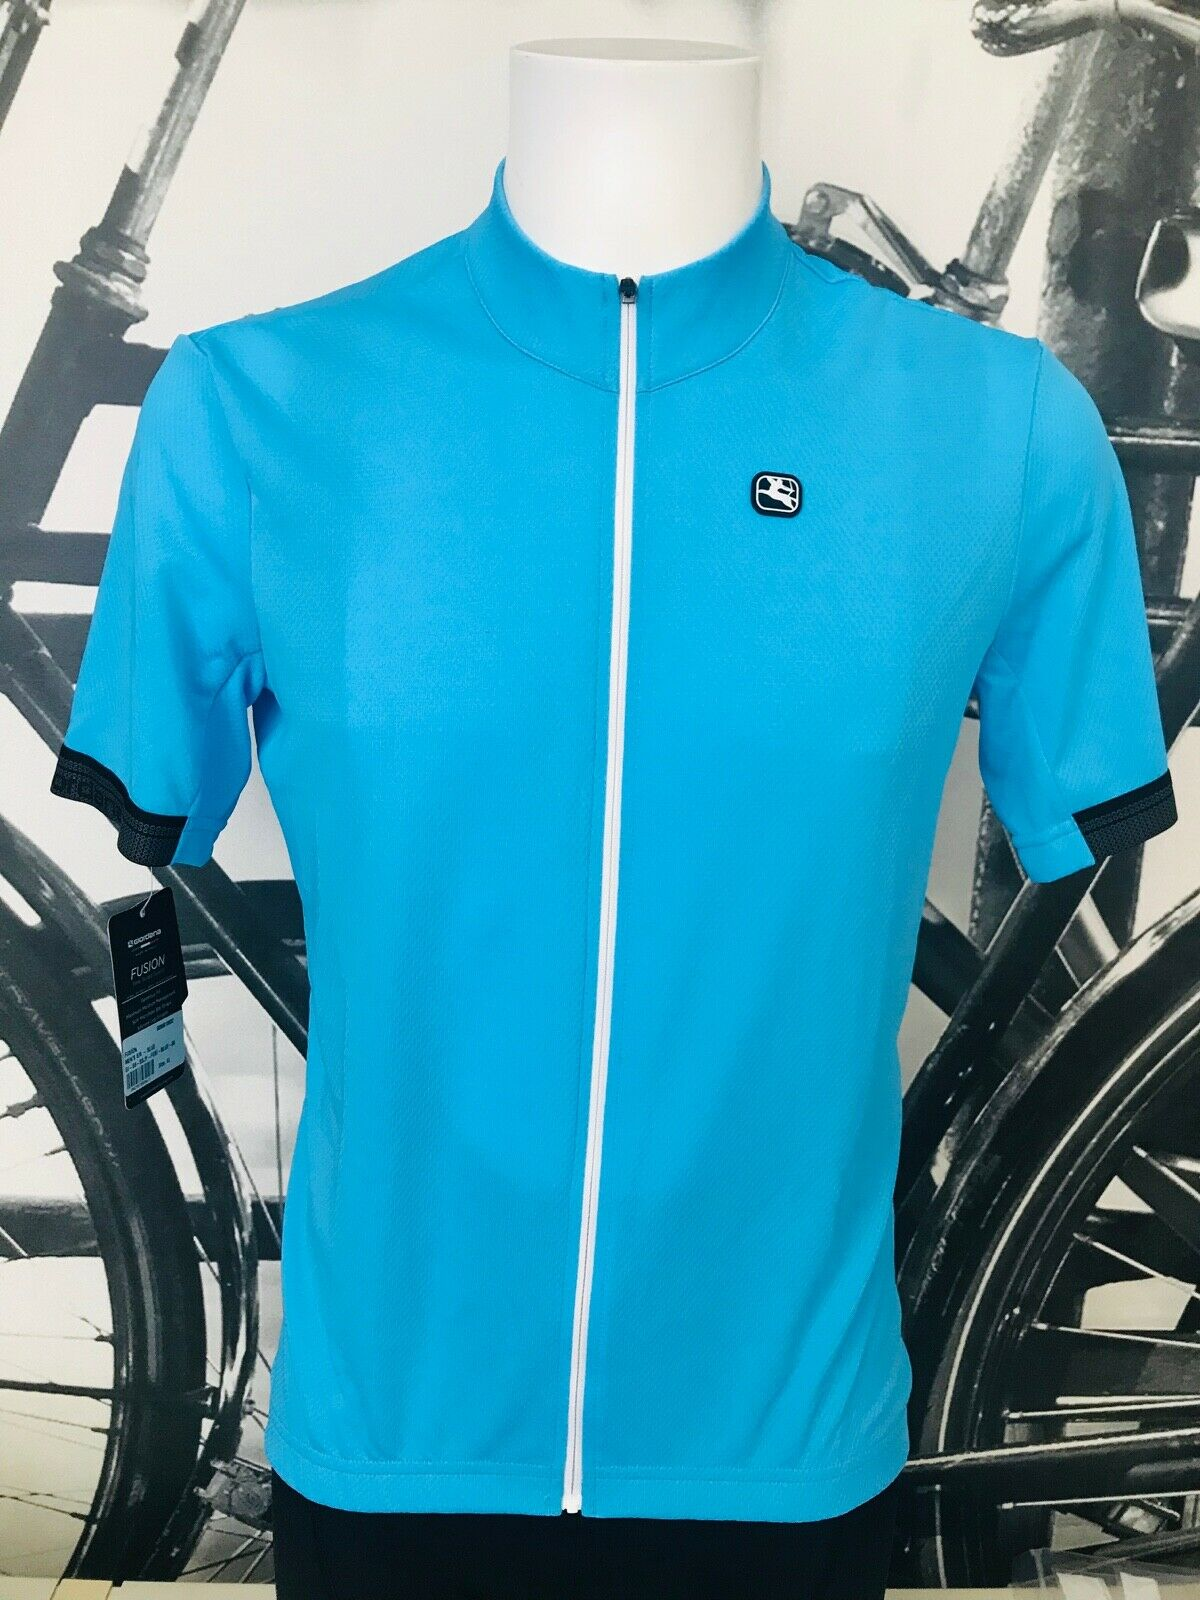 Giordana Cycling Short Sleeve Jersey Light blu  MensDimensione XL BRAND NEW